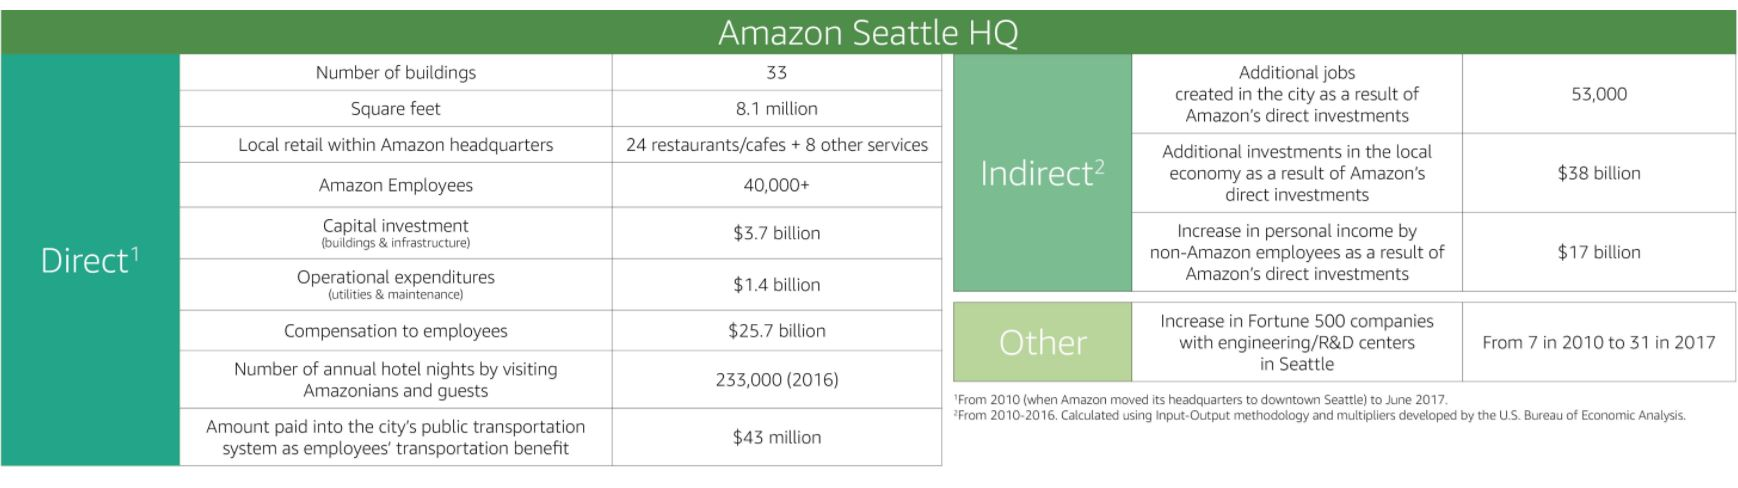 amazon seattle numbers and stats